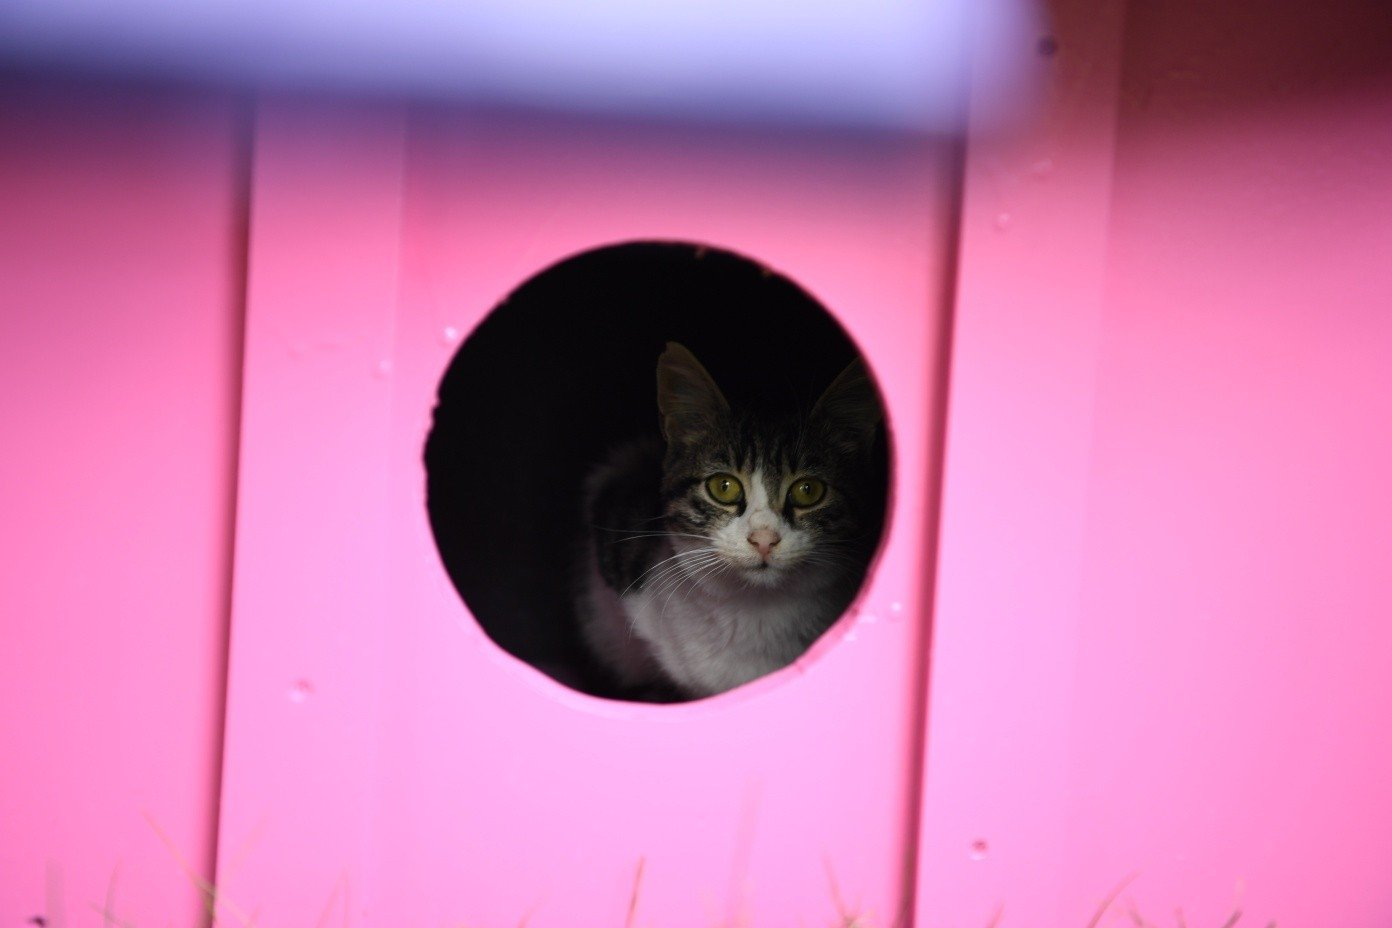 A cat looks out the window of her house, in the town of Kartepe, in Kocaeli, northwestern Turkey, Oct. 8, 2021. (İHA PHOTO)